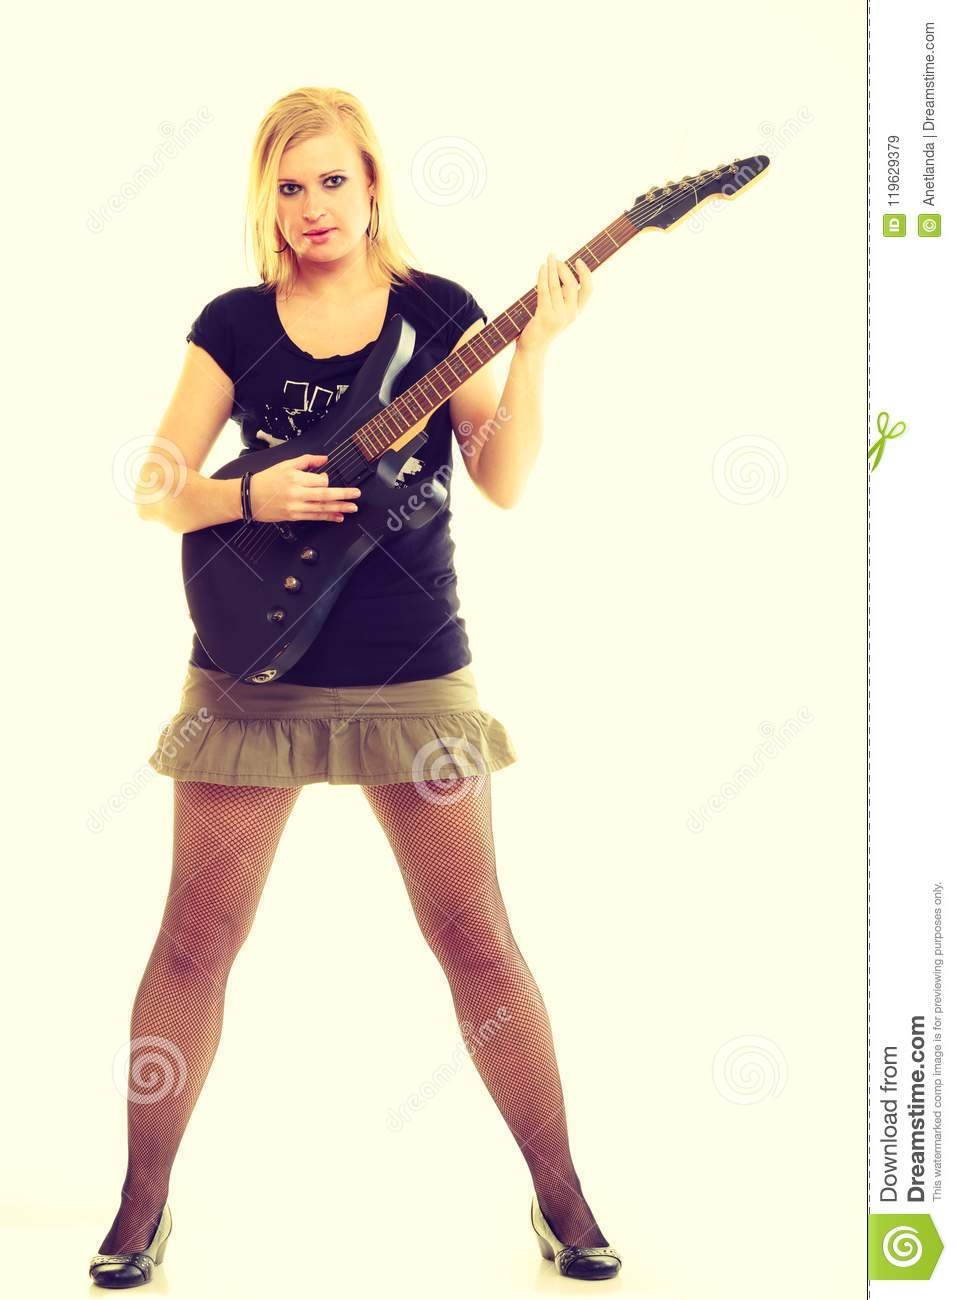 Woman Artist Player With Electric Guitar Stock Image Image Of